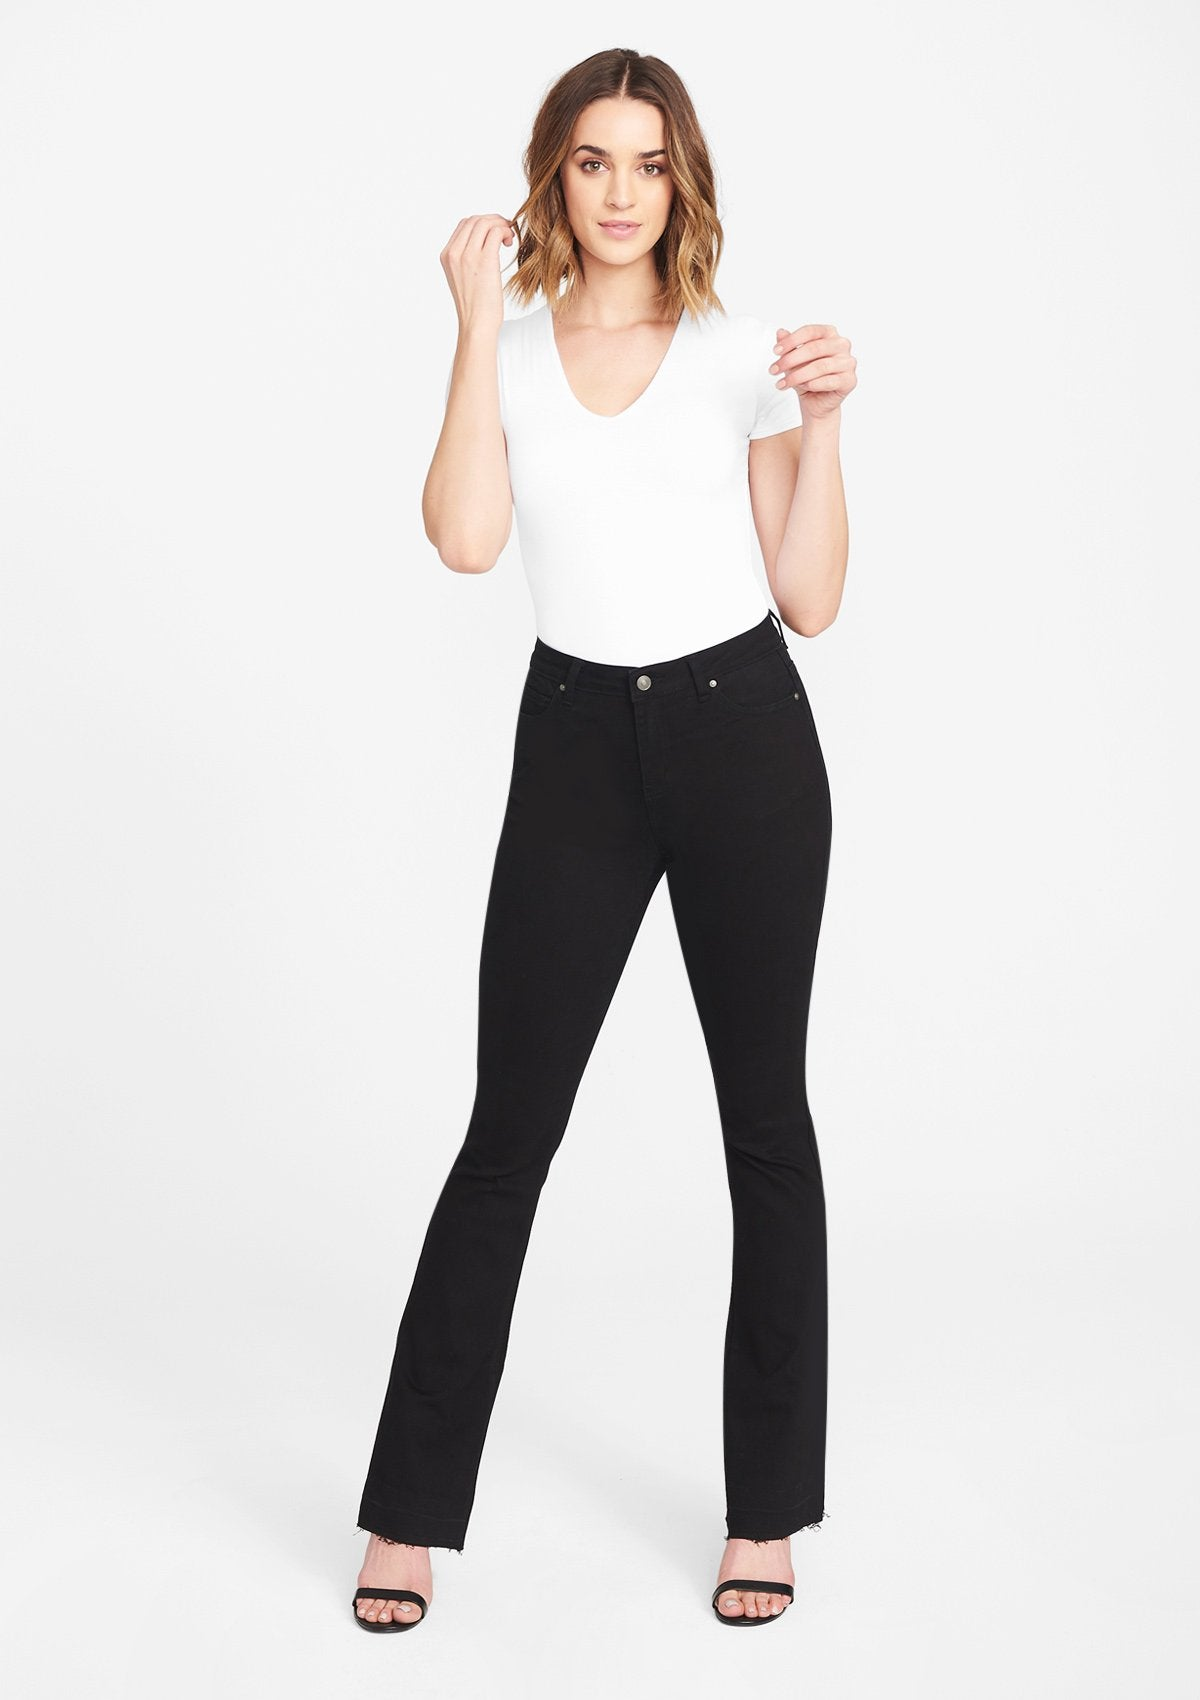 Alloy Apparel Tall High Waist Flare Jeans for Women in Black Size 20 length 37 | Cotton